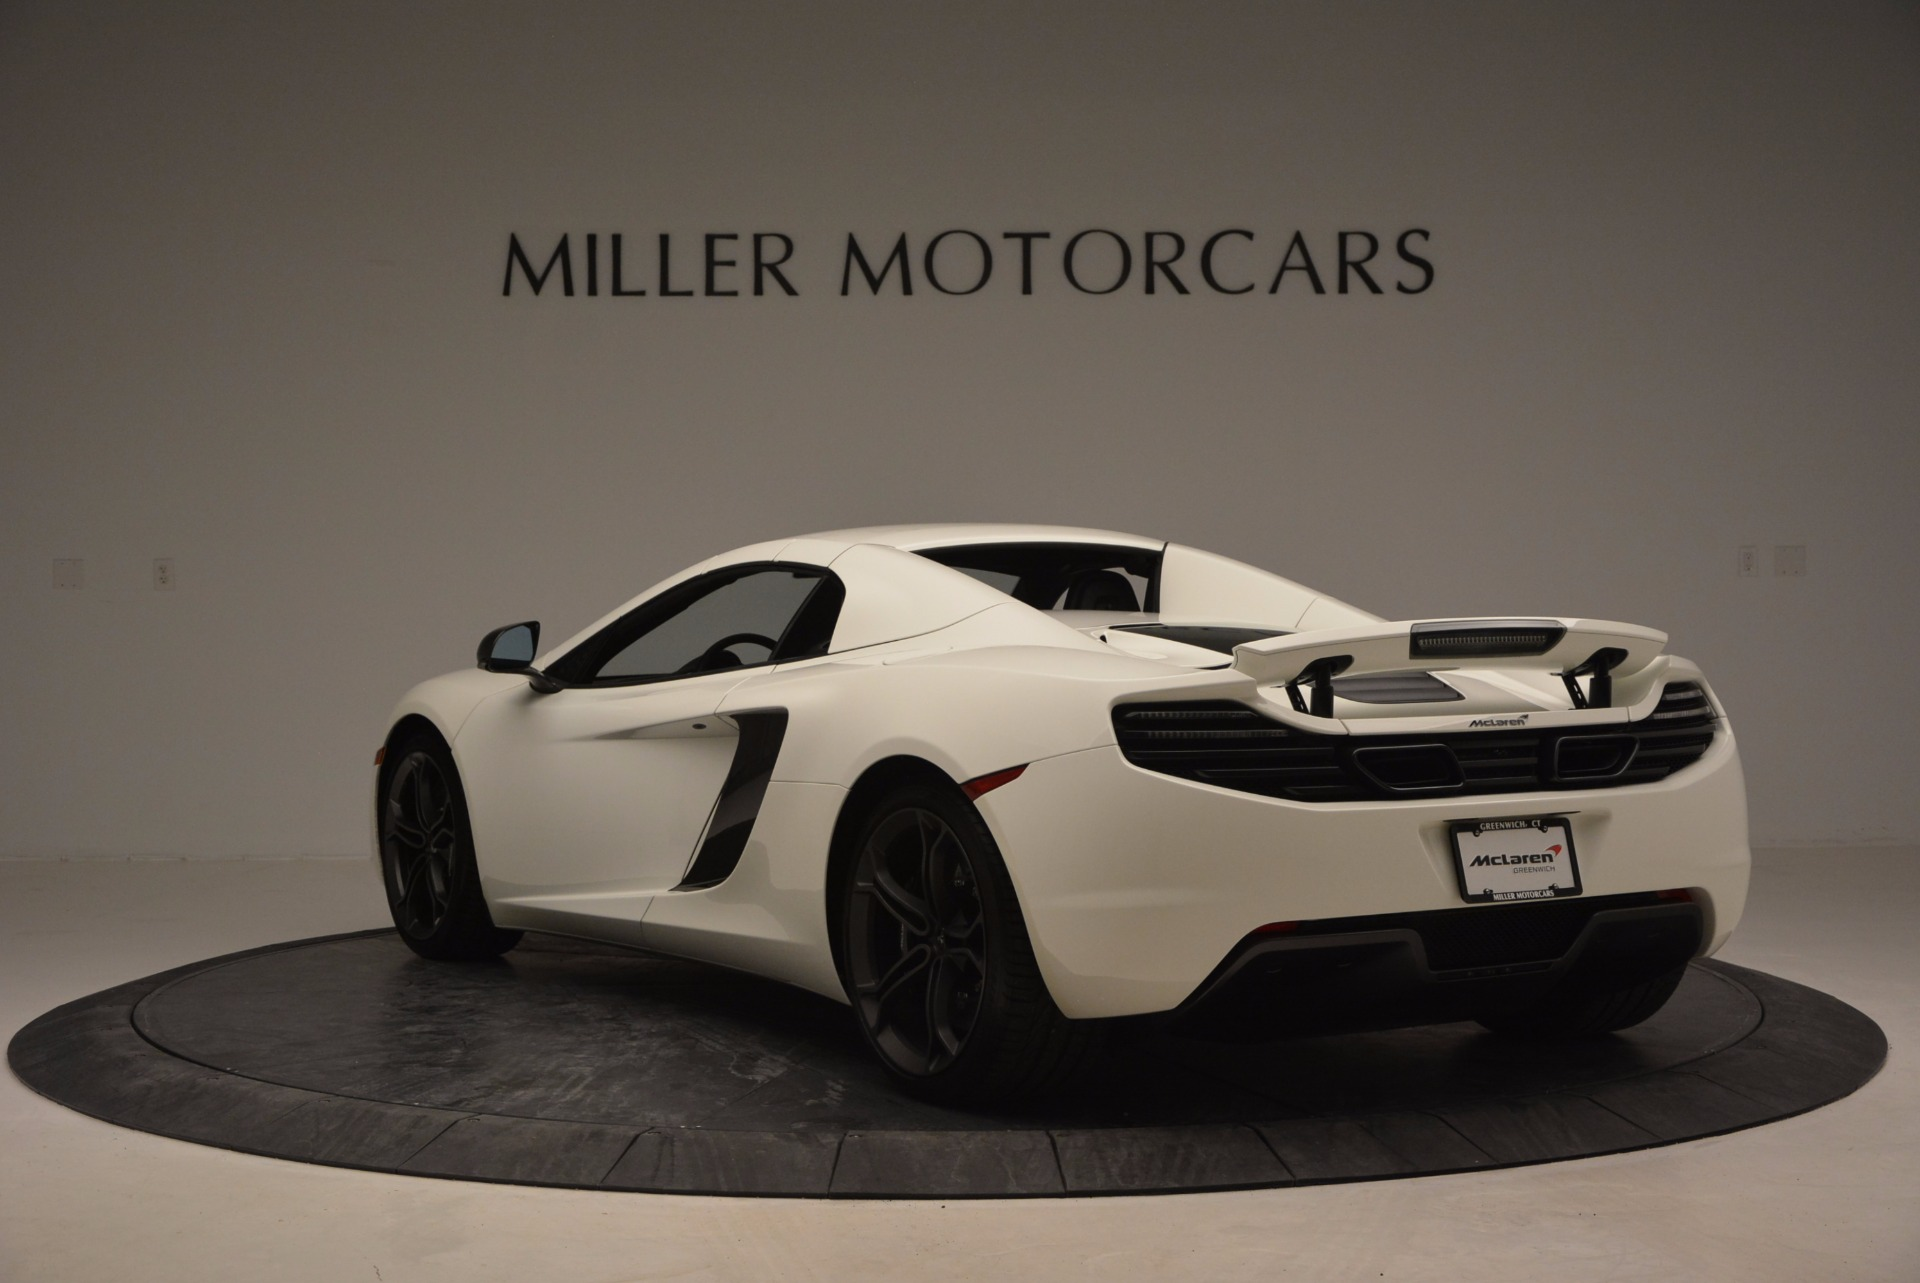 Used 2014 McLaren MP4-12C Spider For Sale In Greenwich, CT. Alfa Romeo of Greenwich, 3136 908_p16